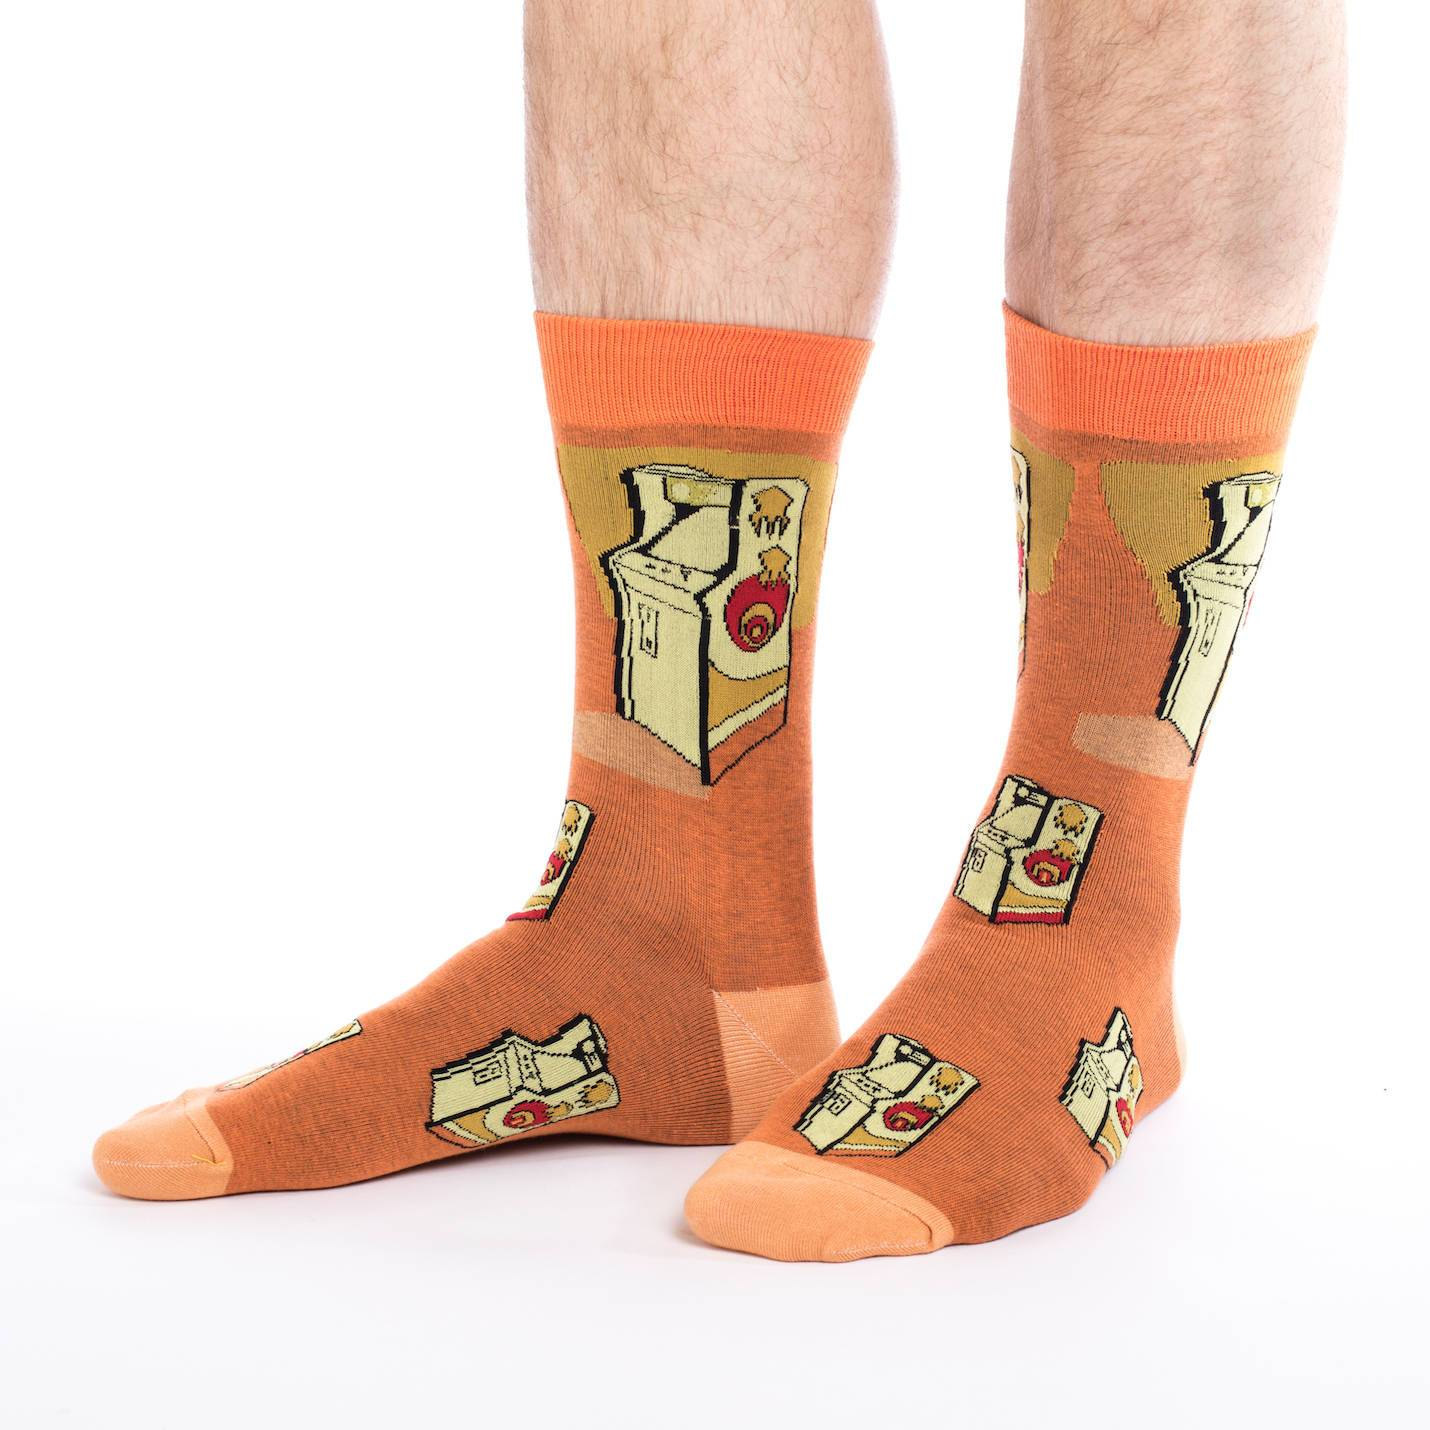 Arcade Machine Crew Socks